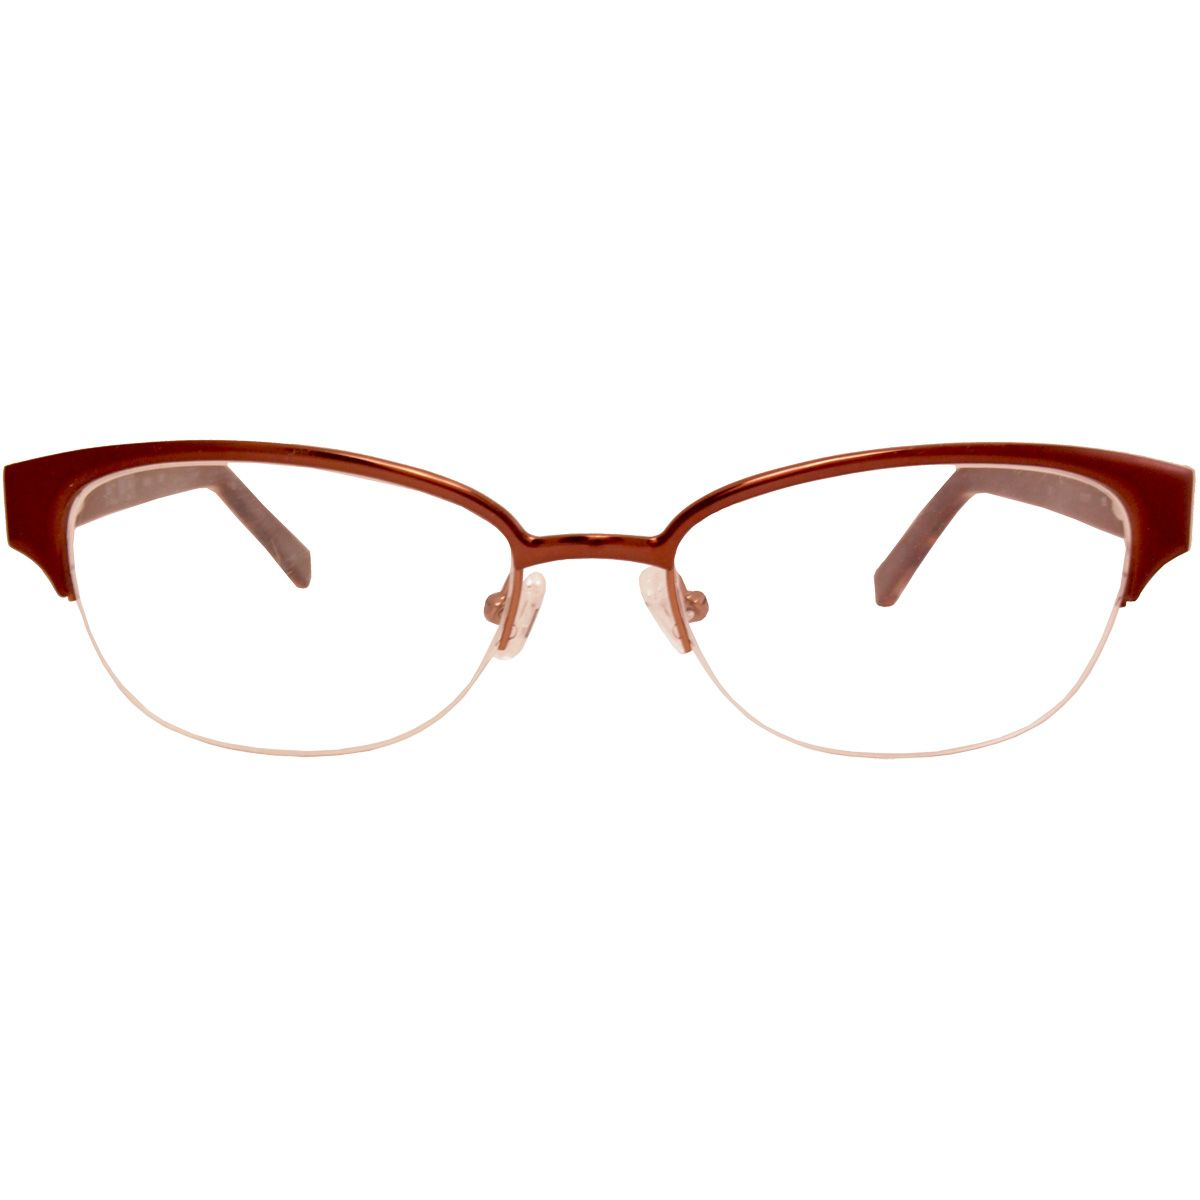 4bdd251c32 Flower Eye Glass Frames by Drew Barrymore. This is the style named Billie.